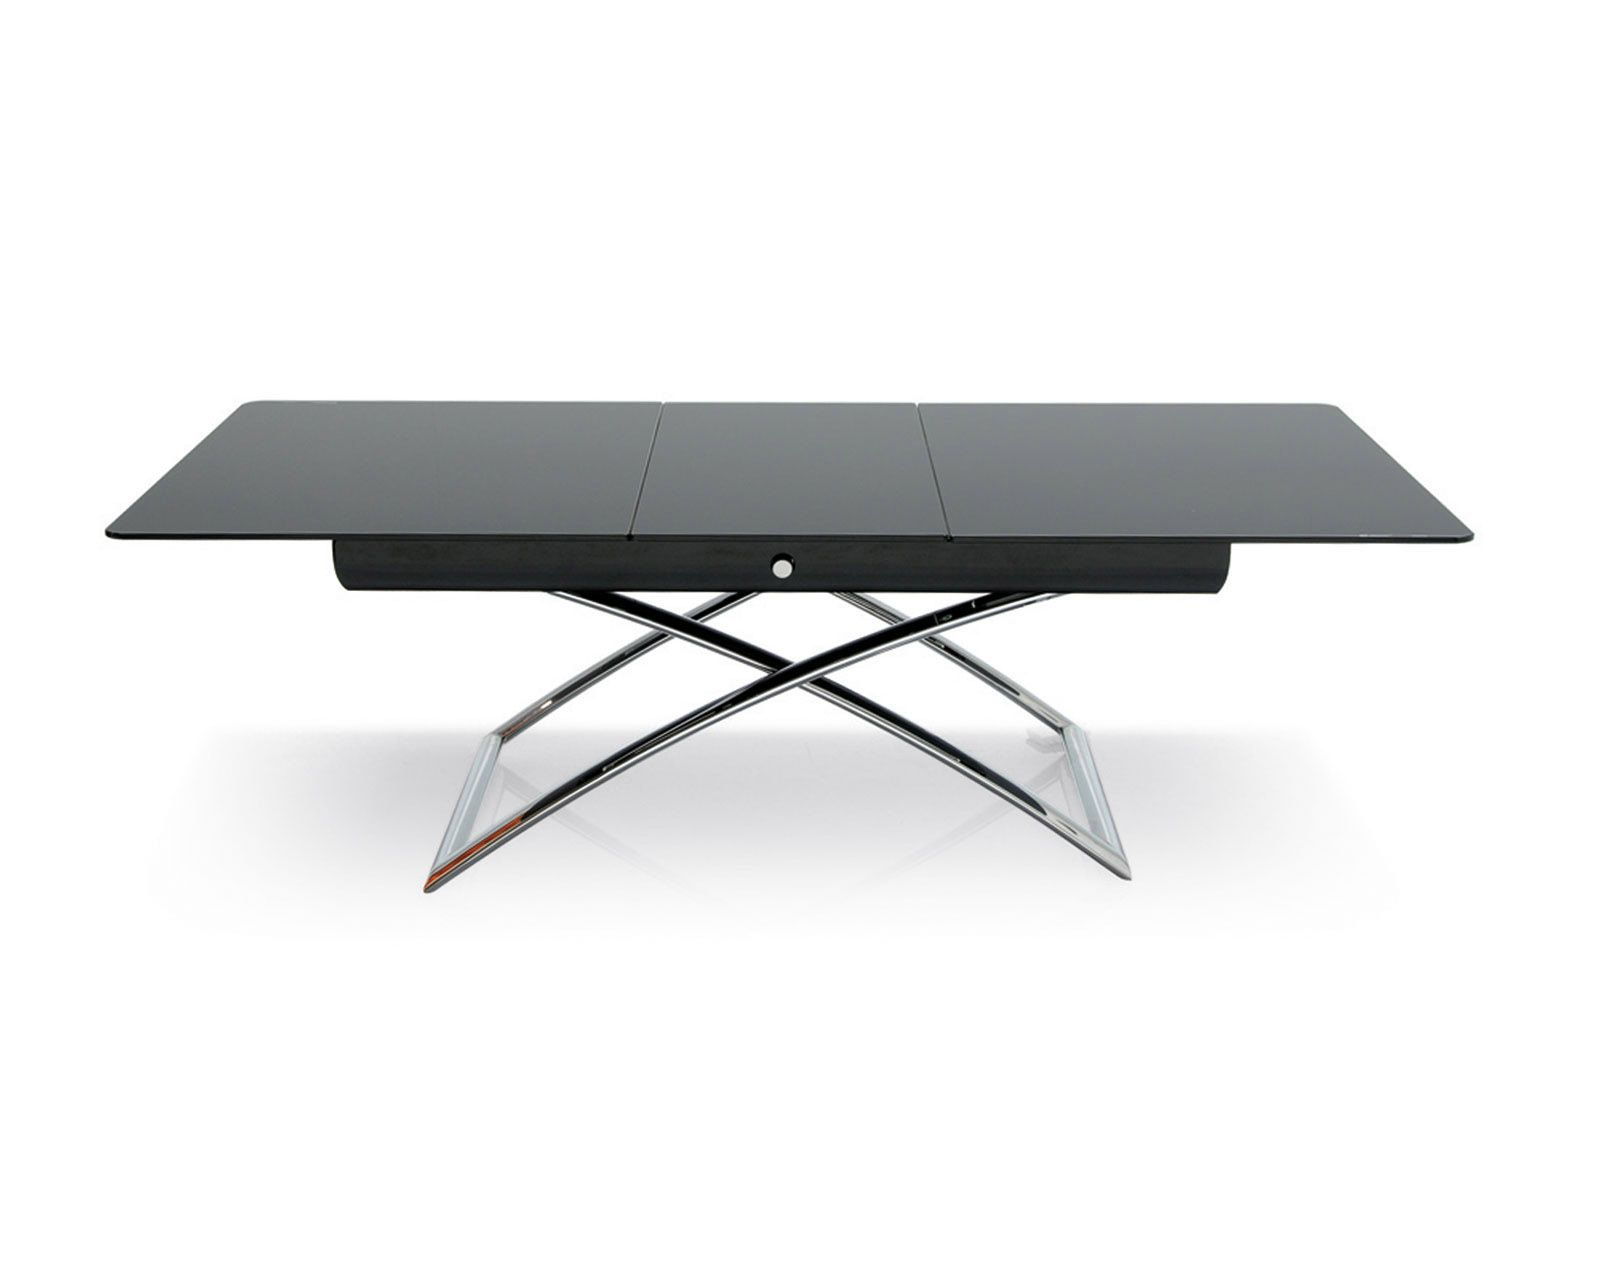 Magic J Cocktail Table Grey Dc Calligaris 7lr Table Pliante Table Basse Table Basse Pliante